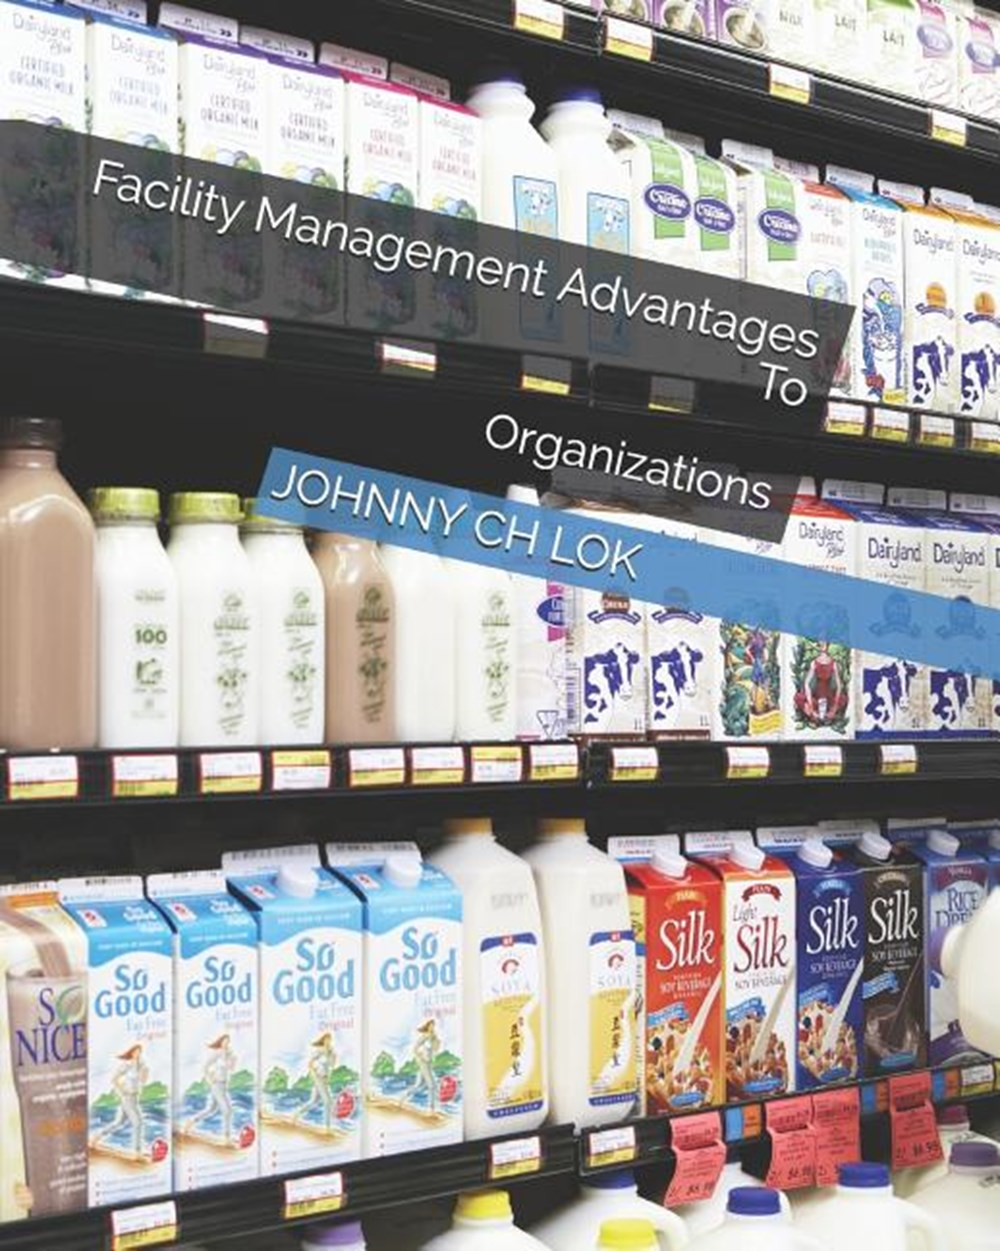 Facility Management Advantages To Organizations